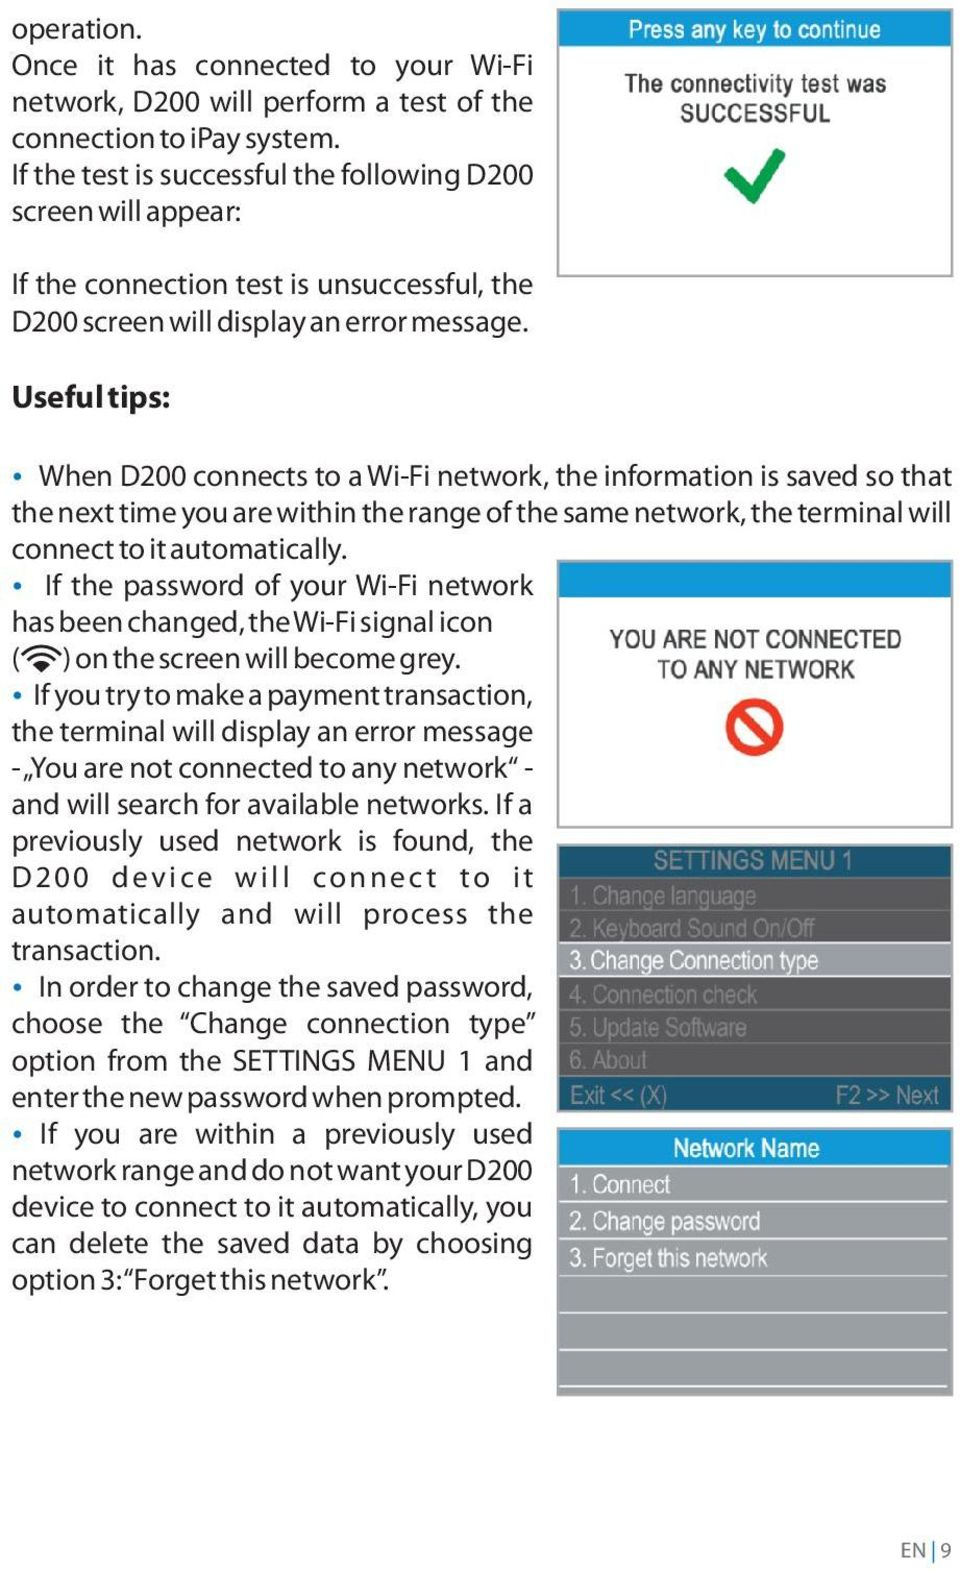 Useful tips: џ When D200 connects to a Wi-Fi network, the information is saved so that the next time you are within the range of the same network, the terminal will connect to it automatically.